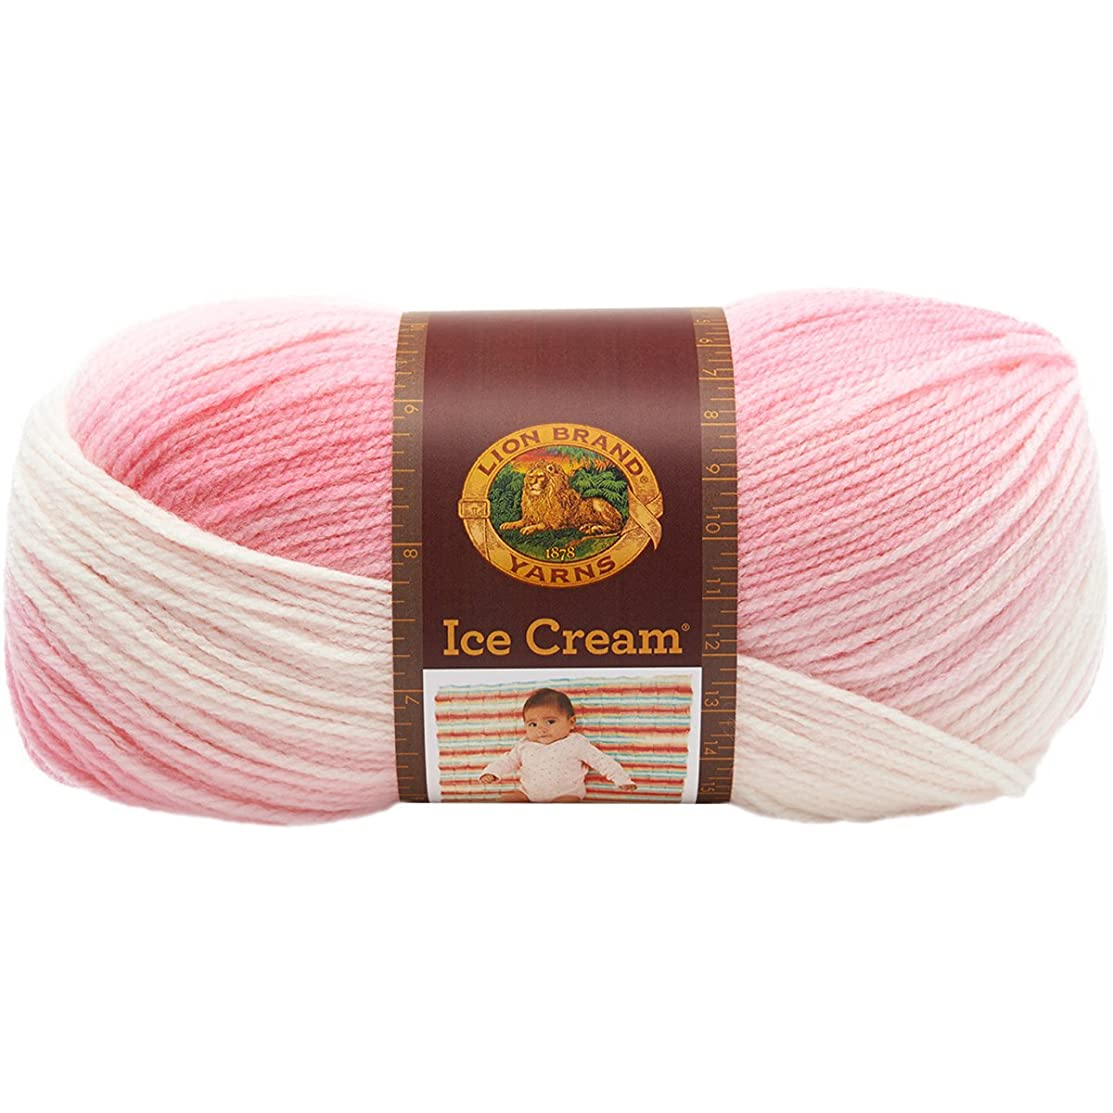 Lion Brand Yarn 923-207 Ice Cream Yarn, Strawberry